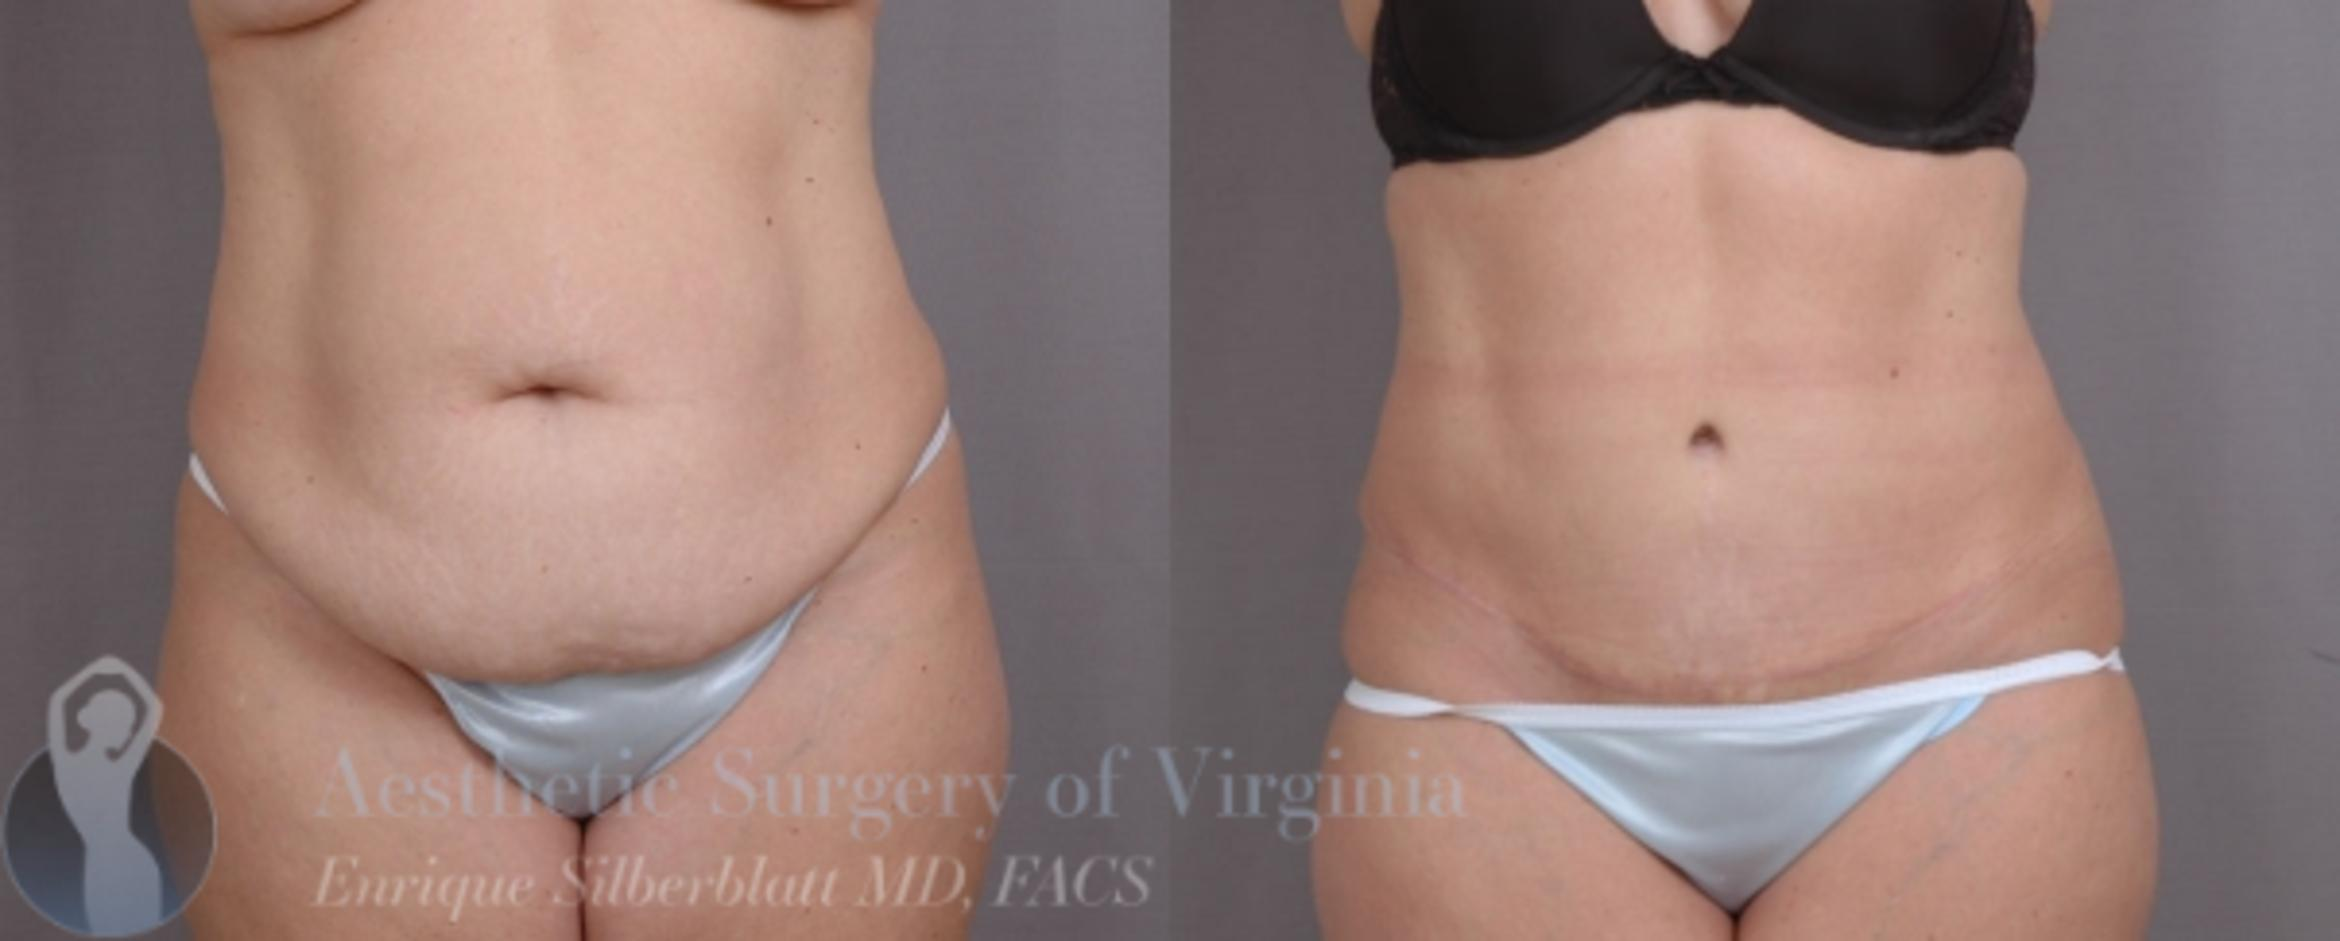 Tummy Tuck Case 29 Before & After View #1 | Roanoke, VA | Aesthetic Surgery of Virginia: Enrique Silberblatt, MD